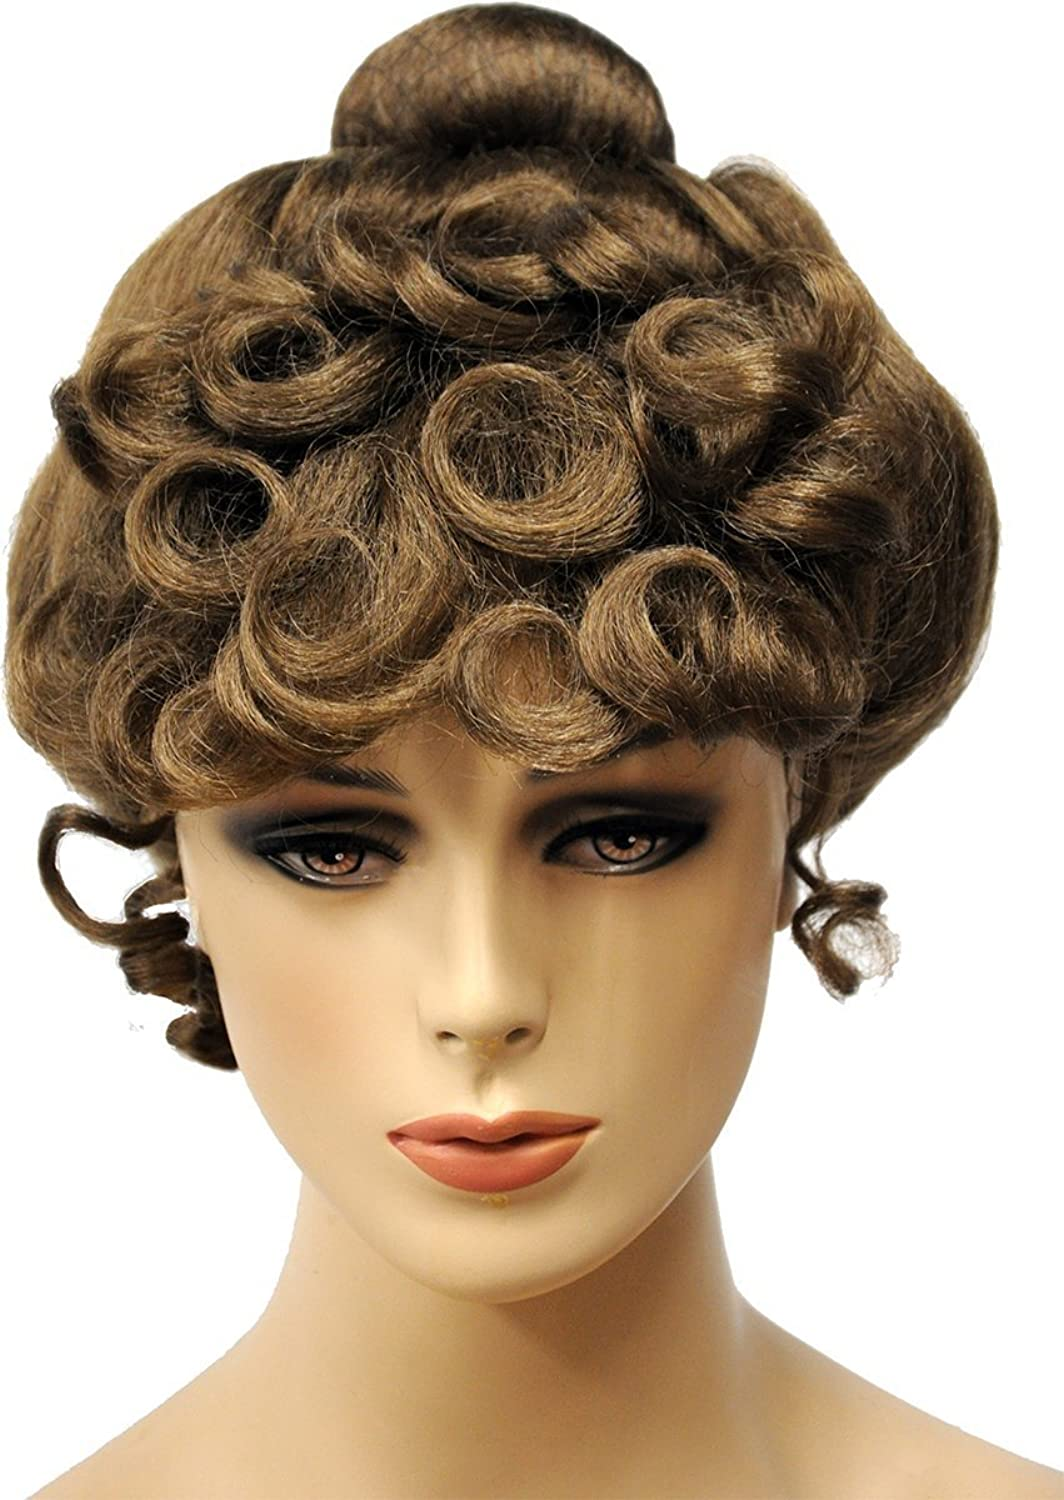 Vintage Hair Accessories: Combs, Headbands, Flowers, Scarf, Wigs Gibson Girl Wig $27.95 AT vintagedancer.com